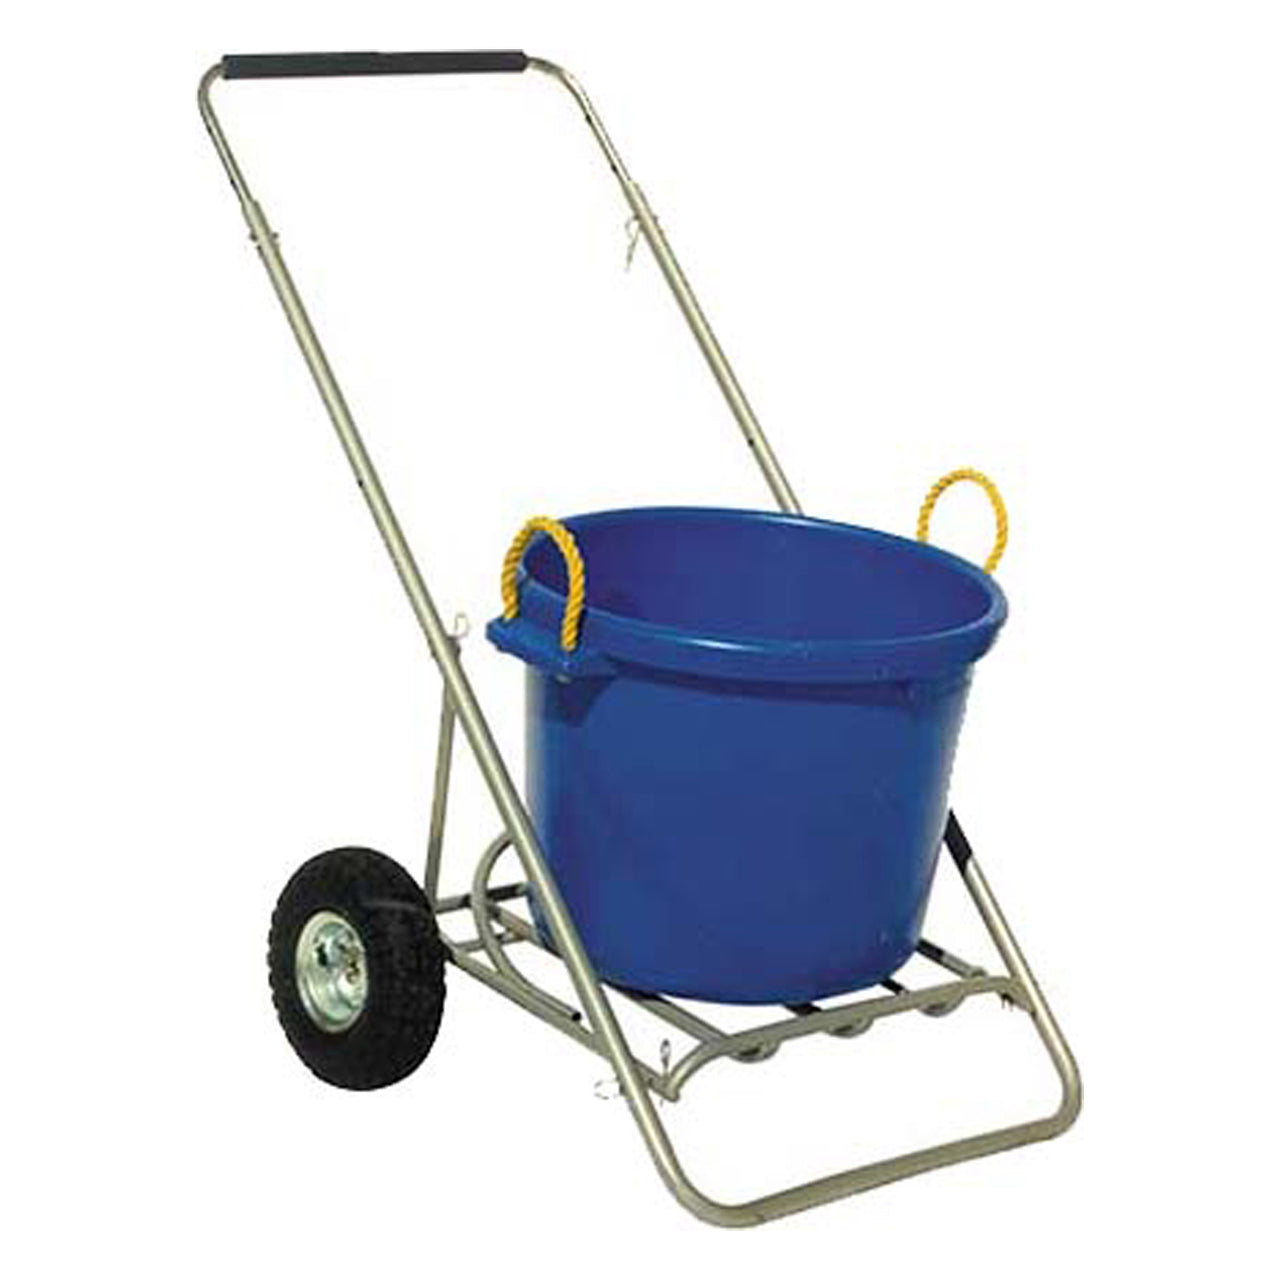 Tuff Stuff Muck Cart (300Lbs) Gray - Us Patent - Buckets Pails Feeders Scoops Tubs Bottles Tuff Stuff - Canada